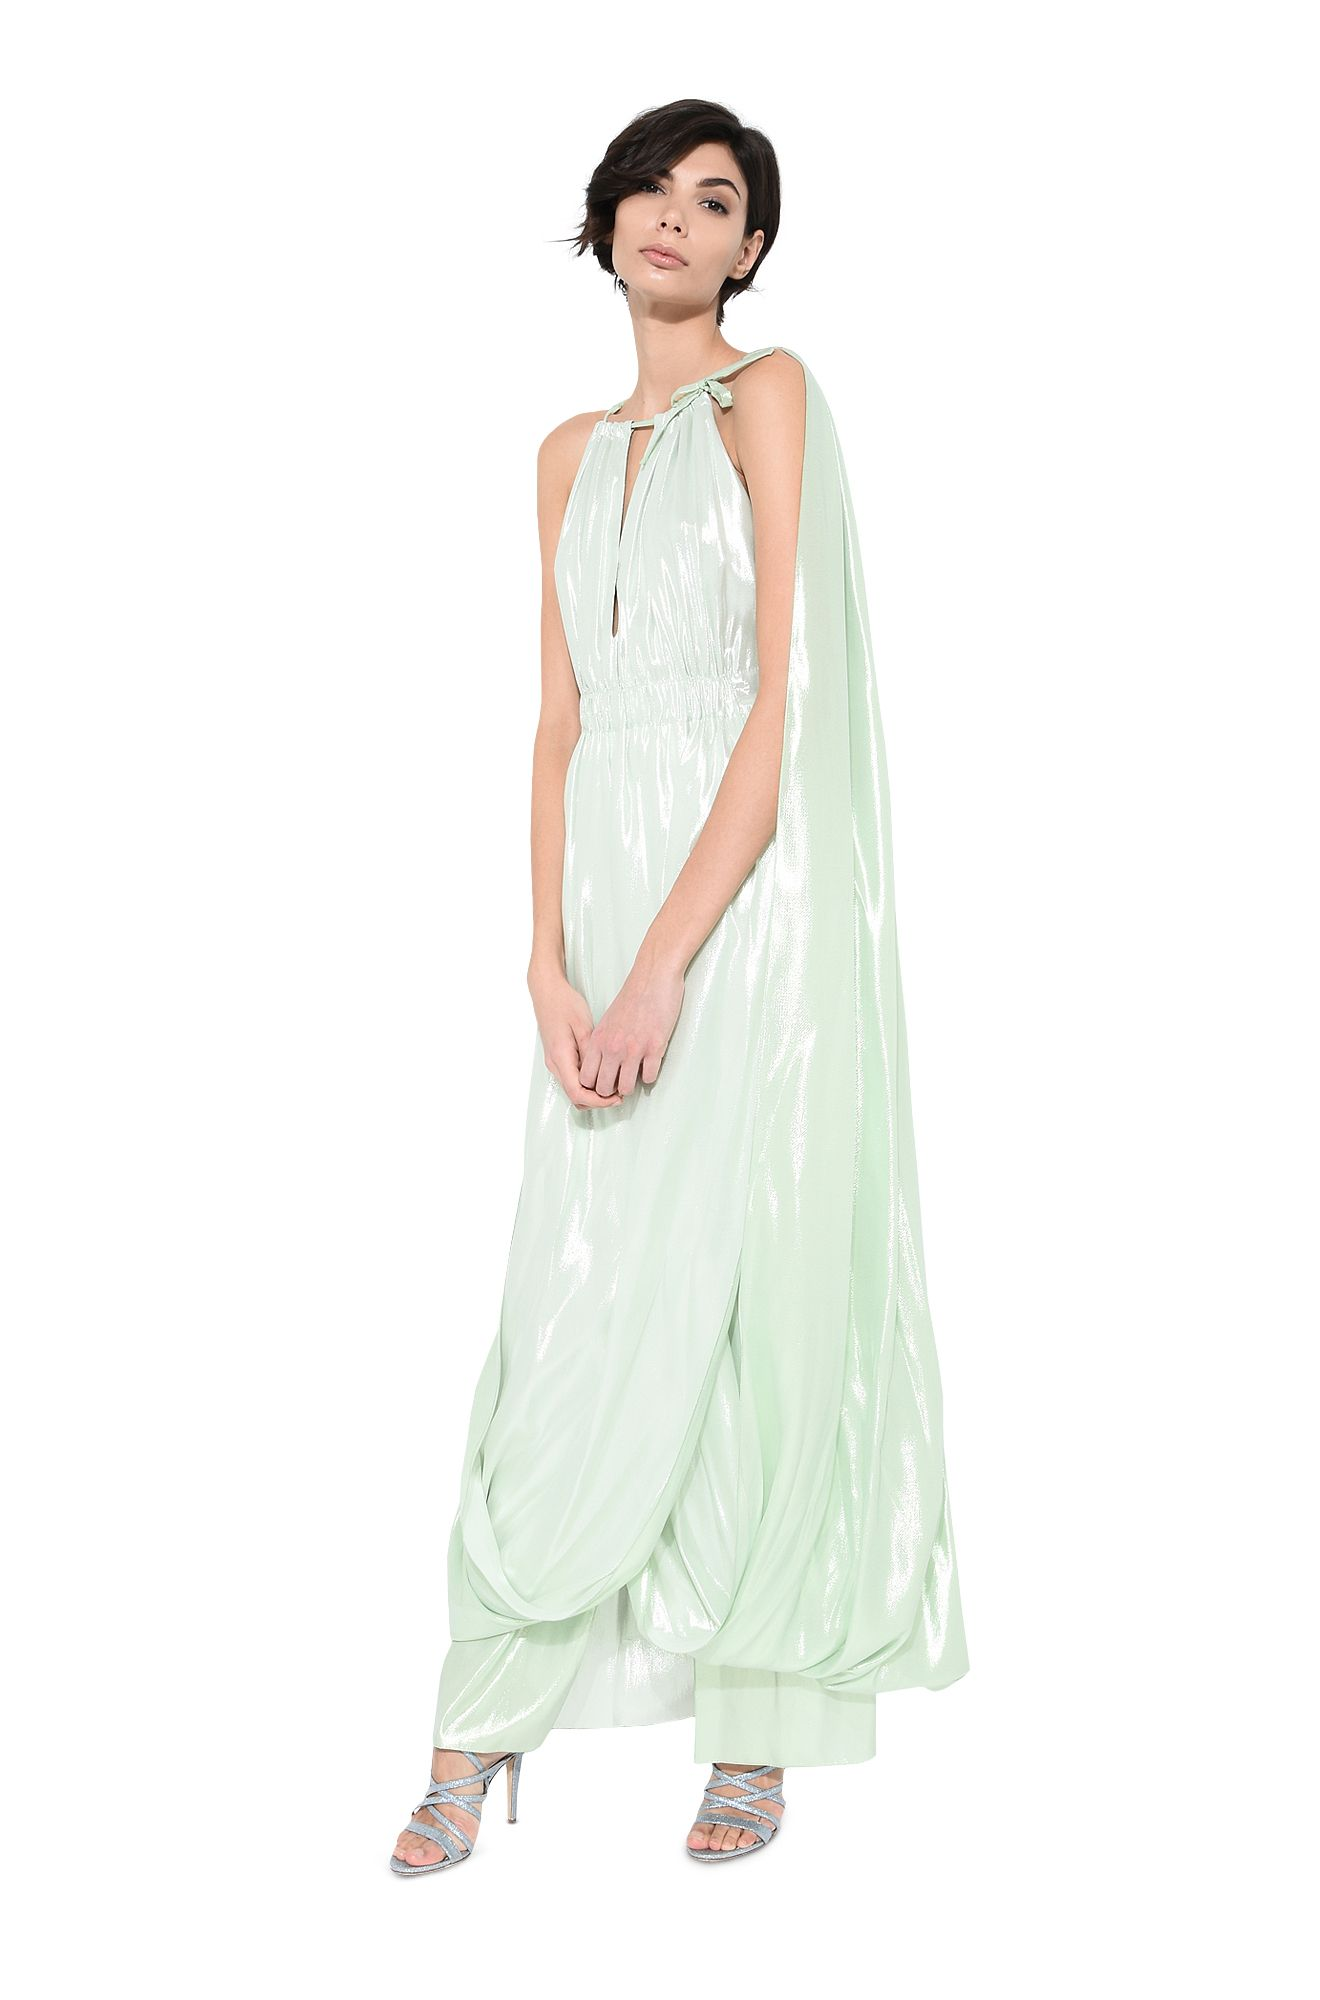 Stole dress in green lamé